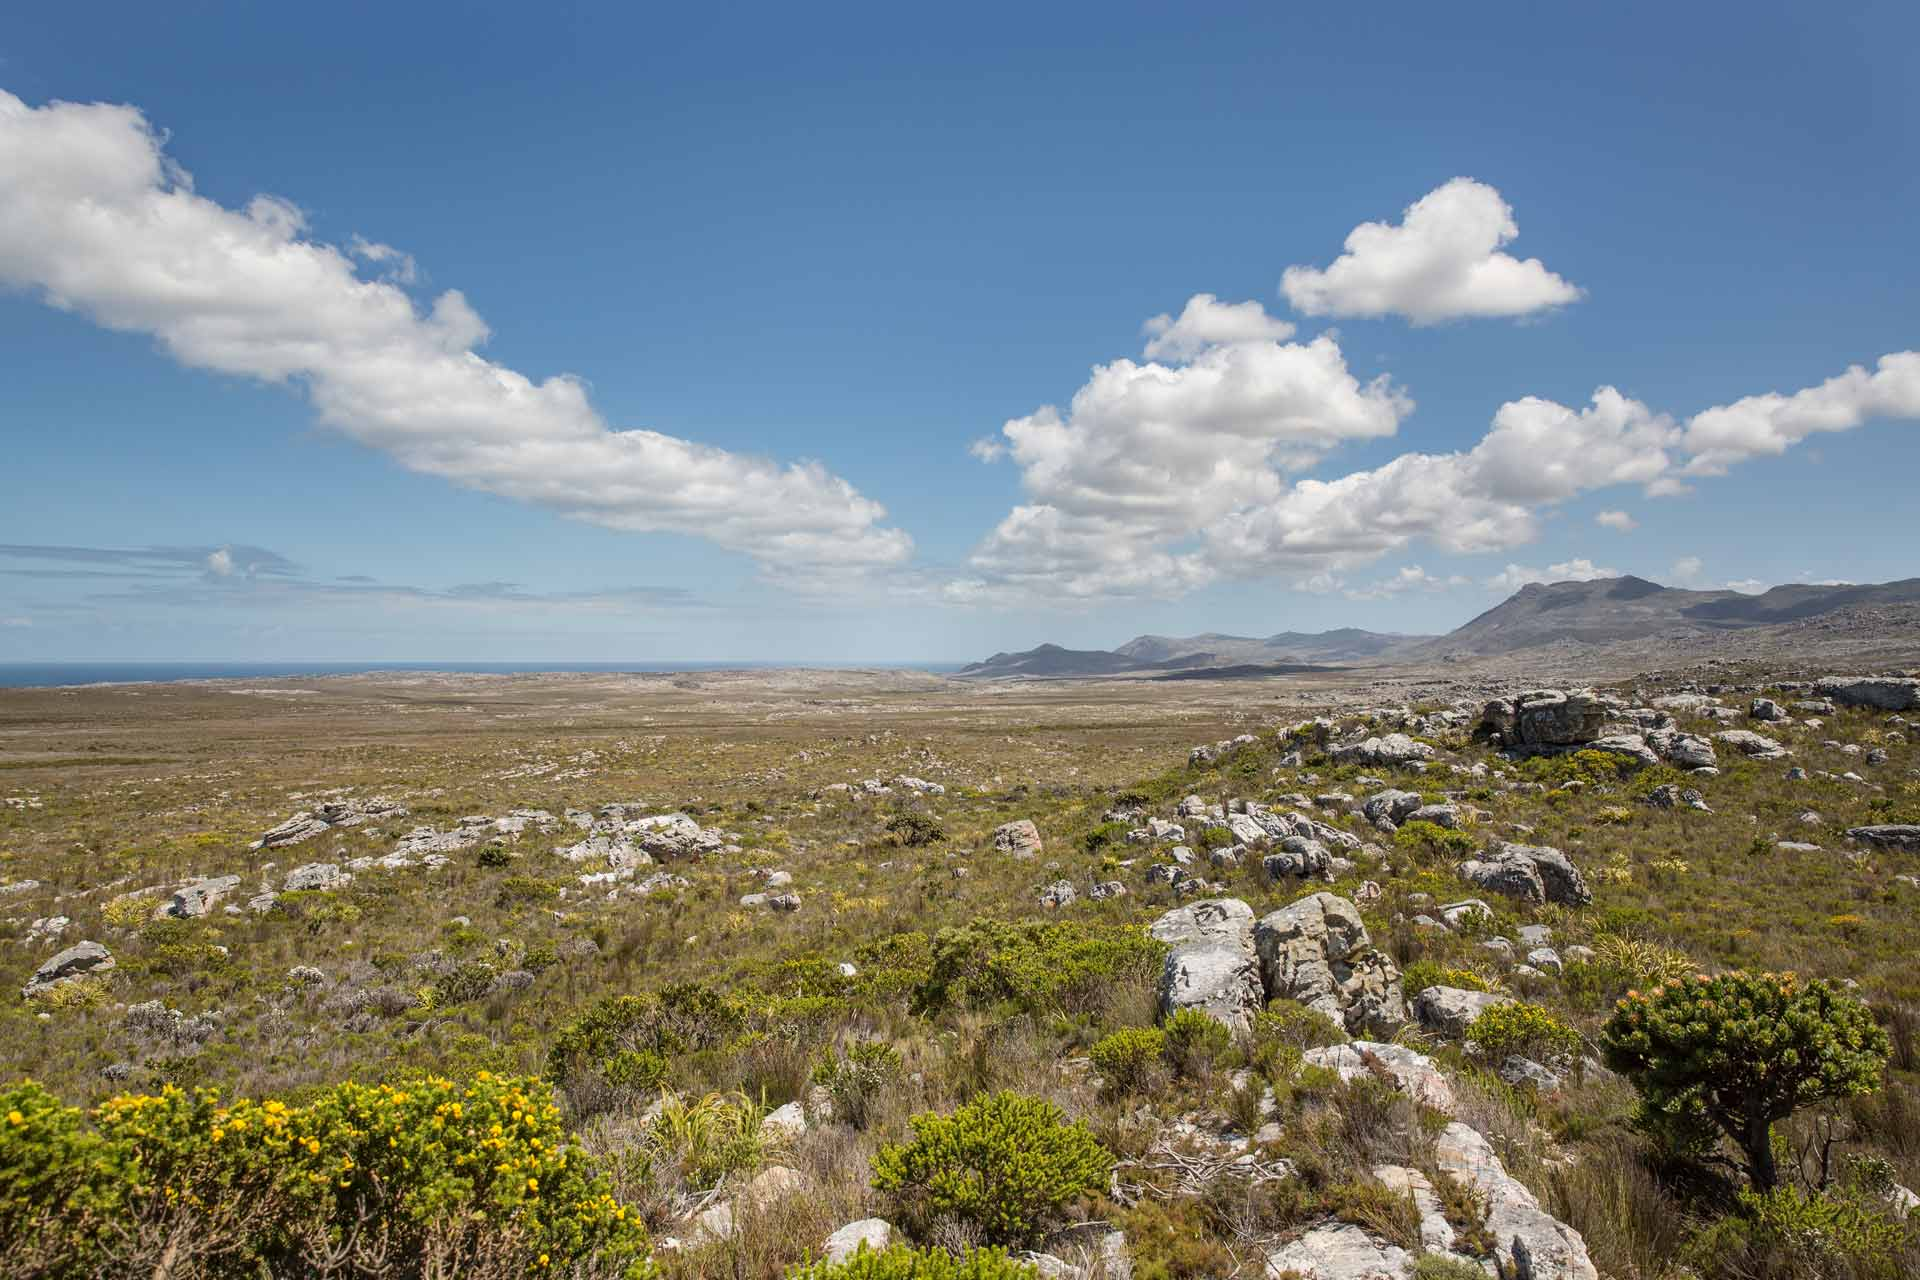 Cape Town - Table Mountain National Park